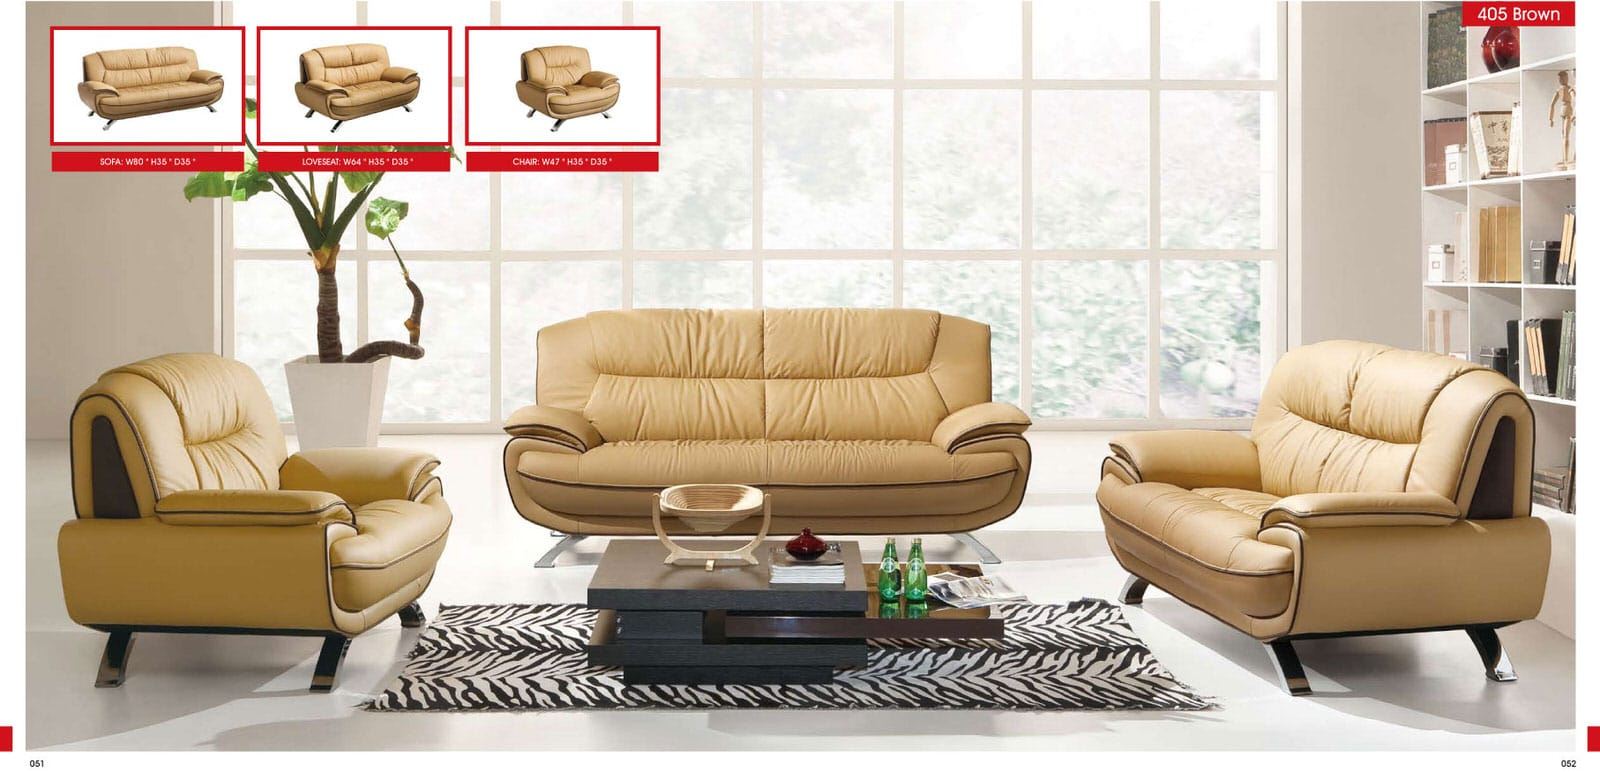 405 brown leather sofa set by esf - Modern living room chair ...